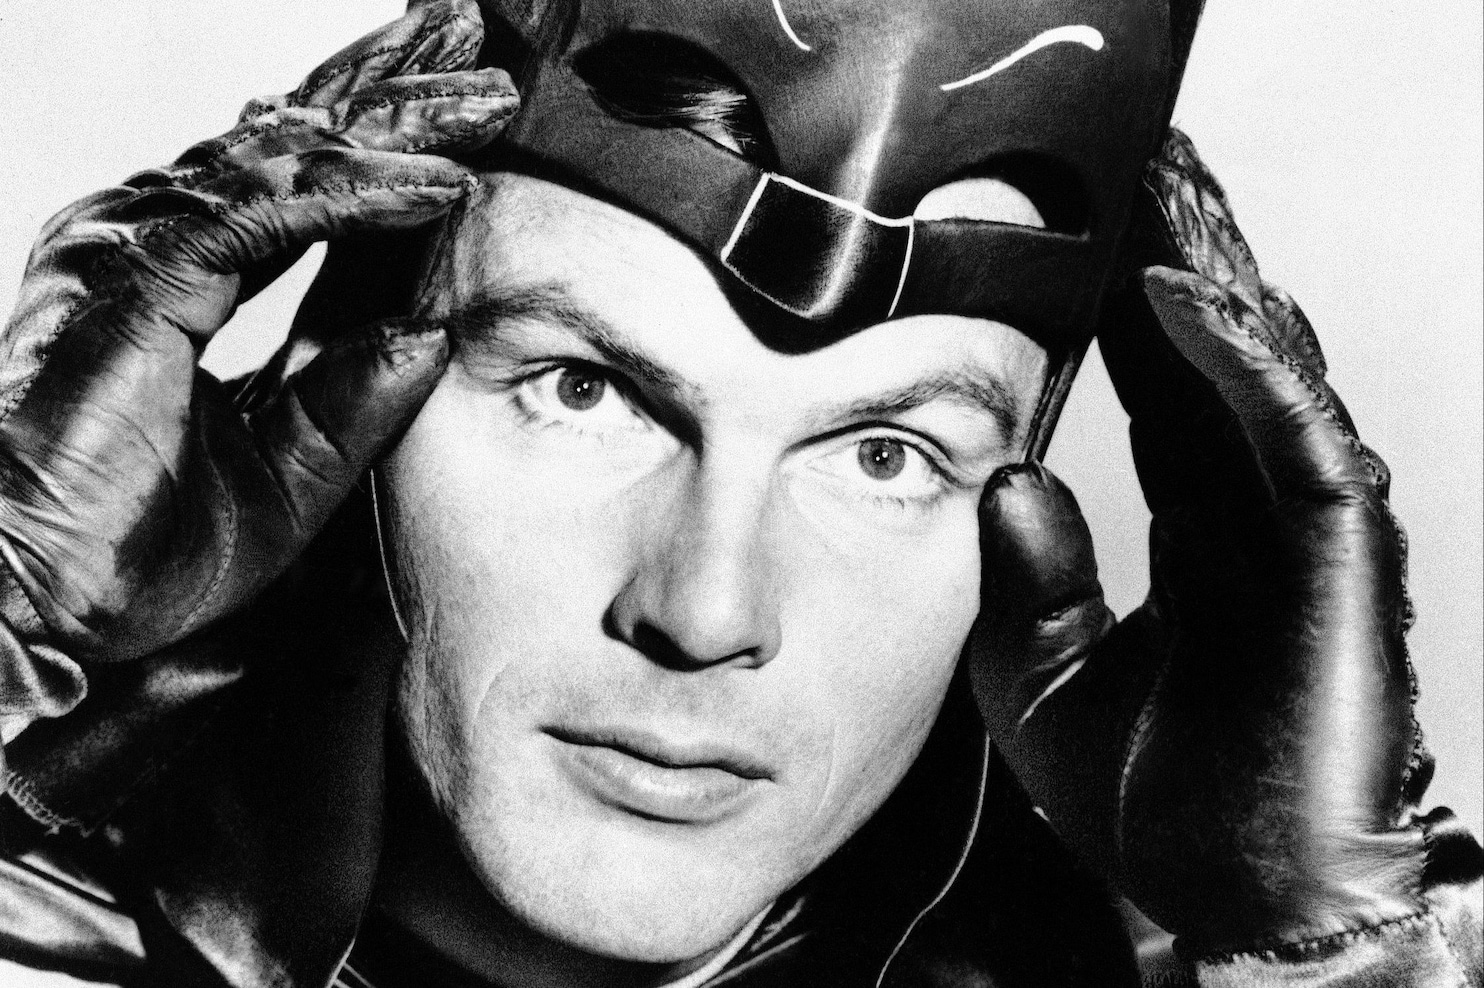 Adam West the actor forever known as TVs Batman dies at